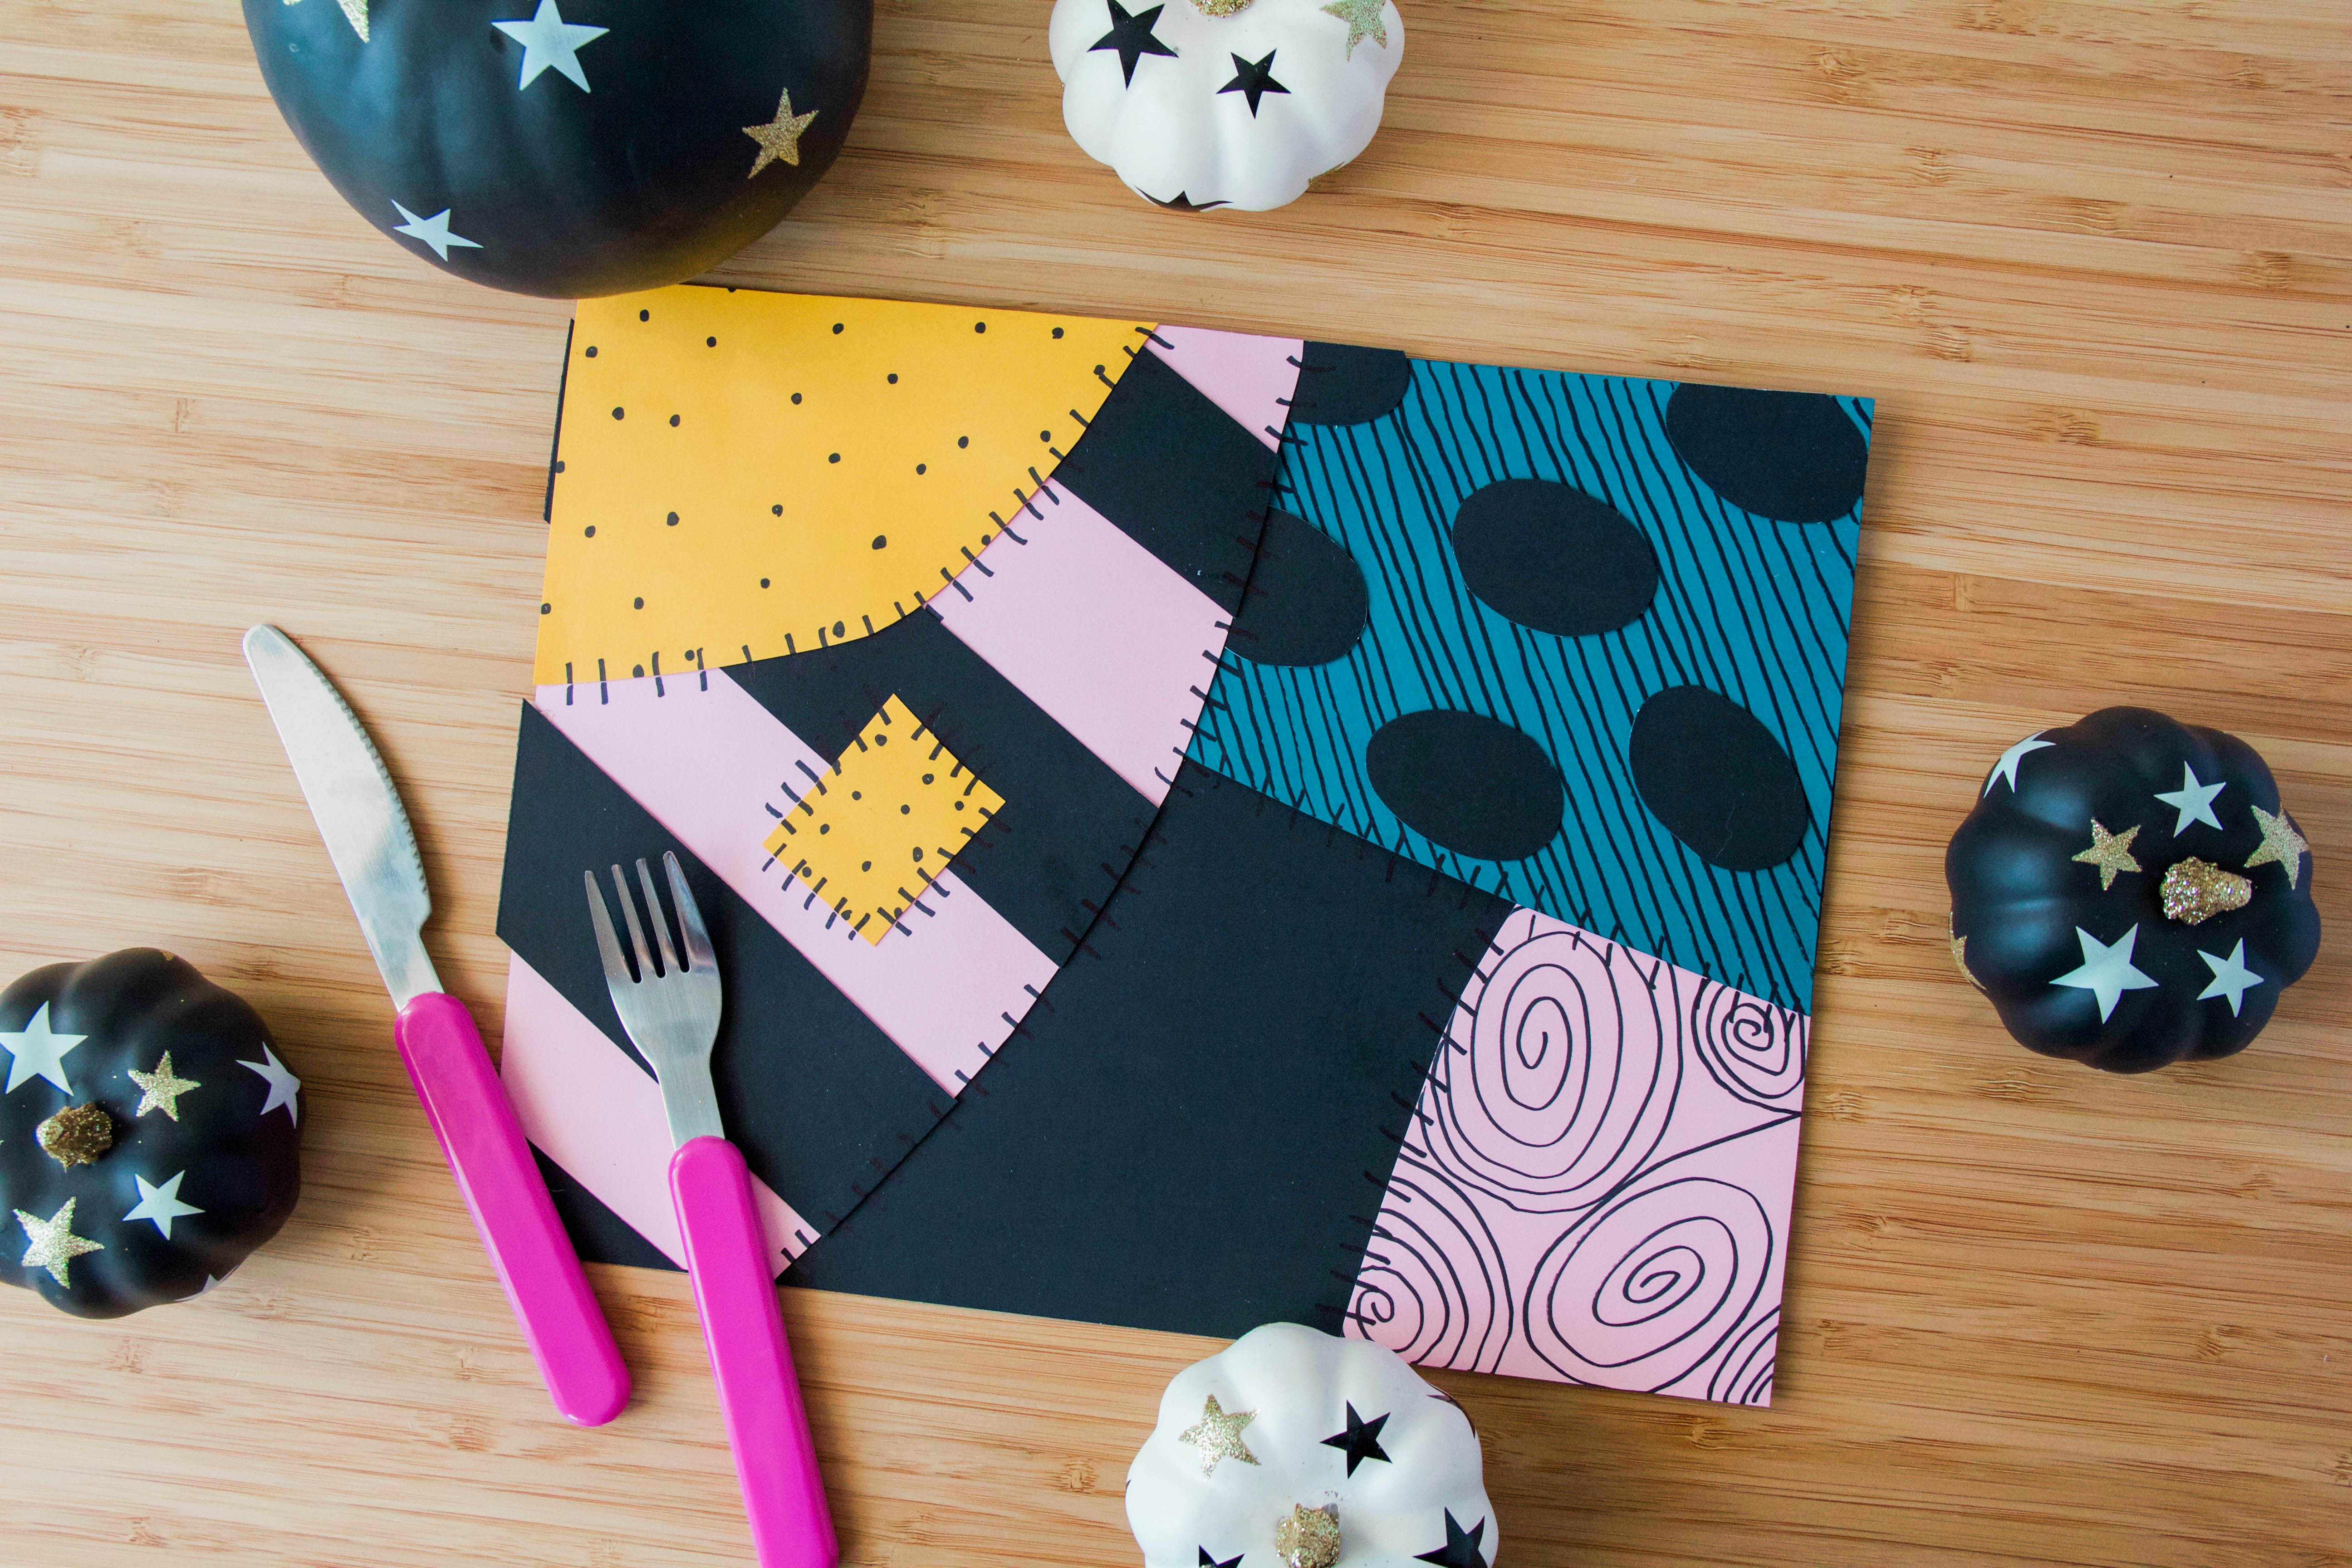 Dine Like Jack & Sally with This 'Nightmare Before Christmas' Place Setting 7